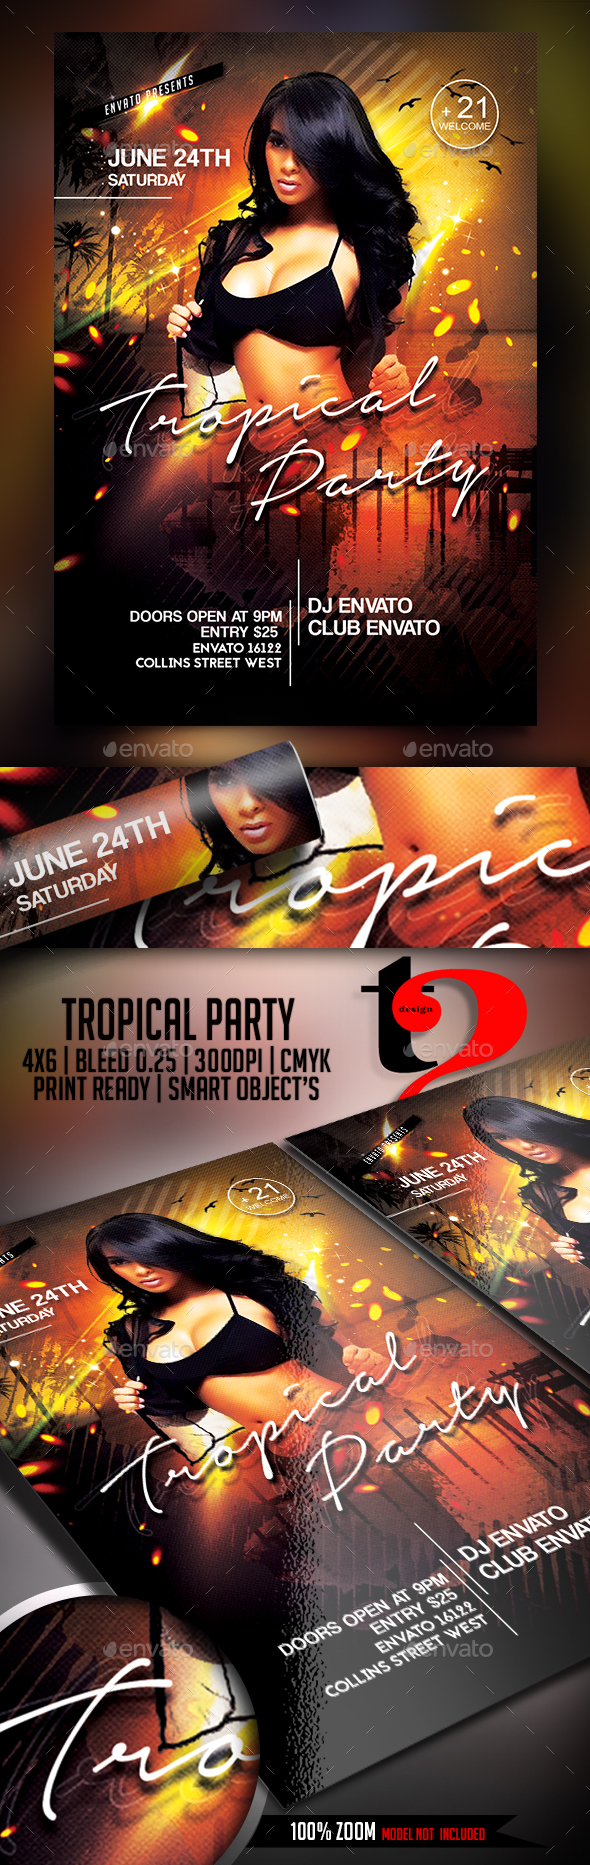 Tropical Party Flyer Template - Clubs & Parties Events